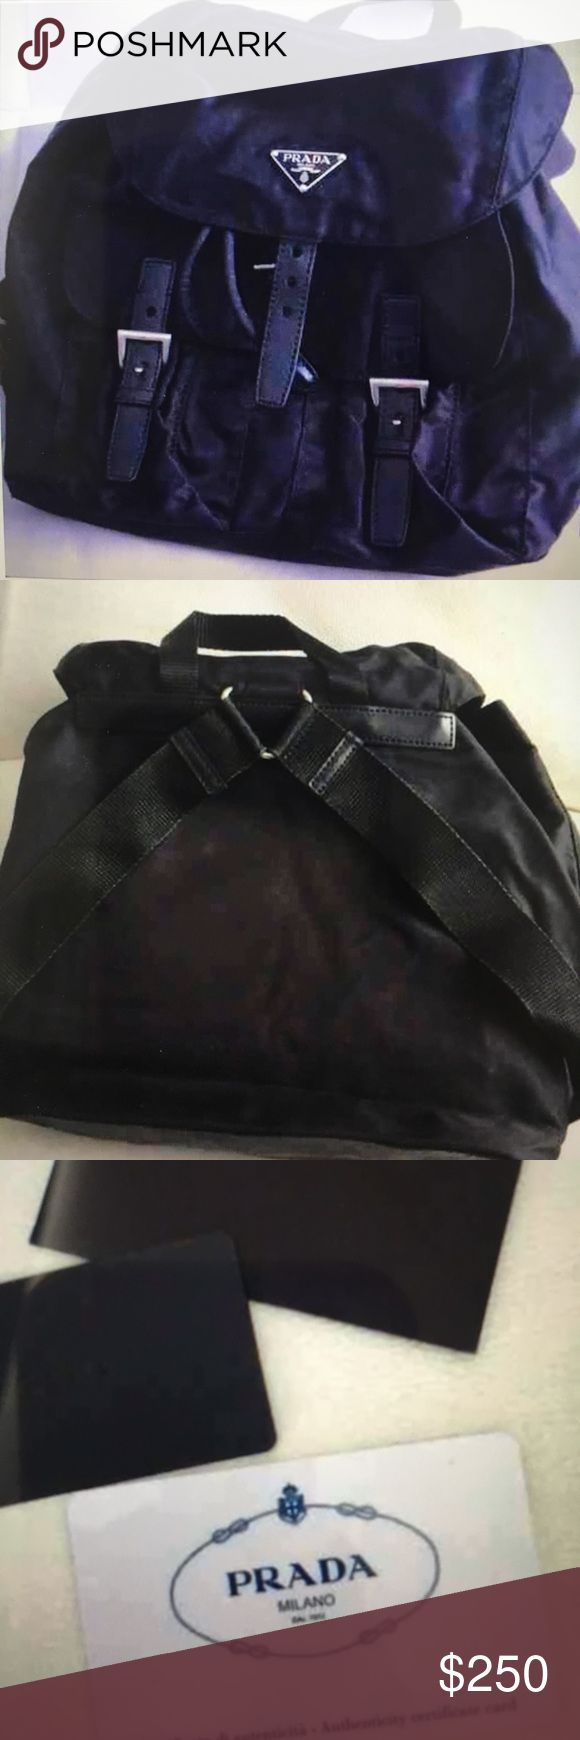 Prada backpack Authentic blk nylon Prada backpack.  Adjustable drawstring and front pockets.  Medium size. Comes with dust bag and authenticity card. Used a few times. Prada Bags Backpacks